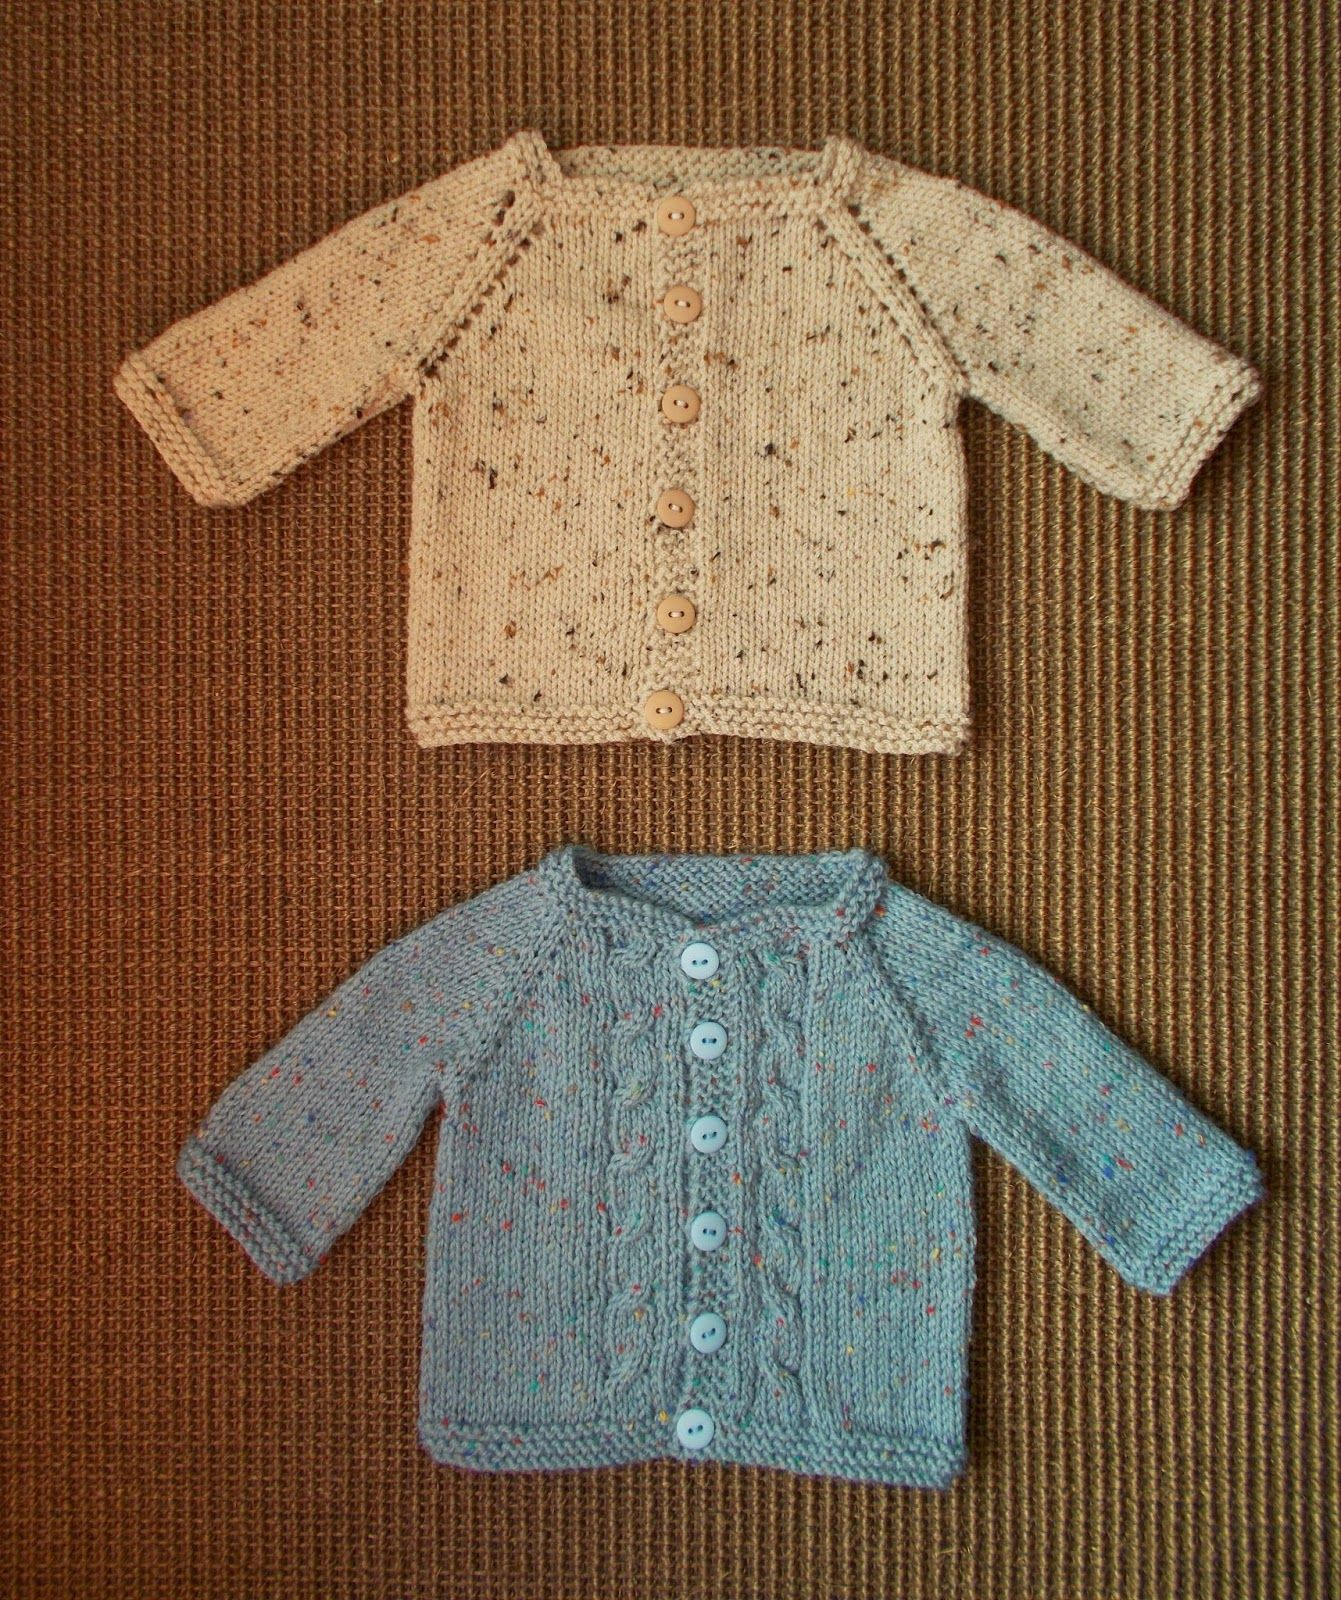 Mariannas lazy daisy days max baby cardigan knit babytoddler mariannas lazy daisy days max baby cardigan knitted bankloansurffo Choice Image